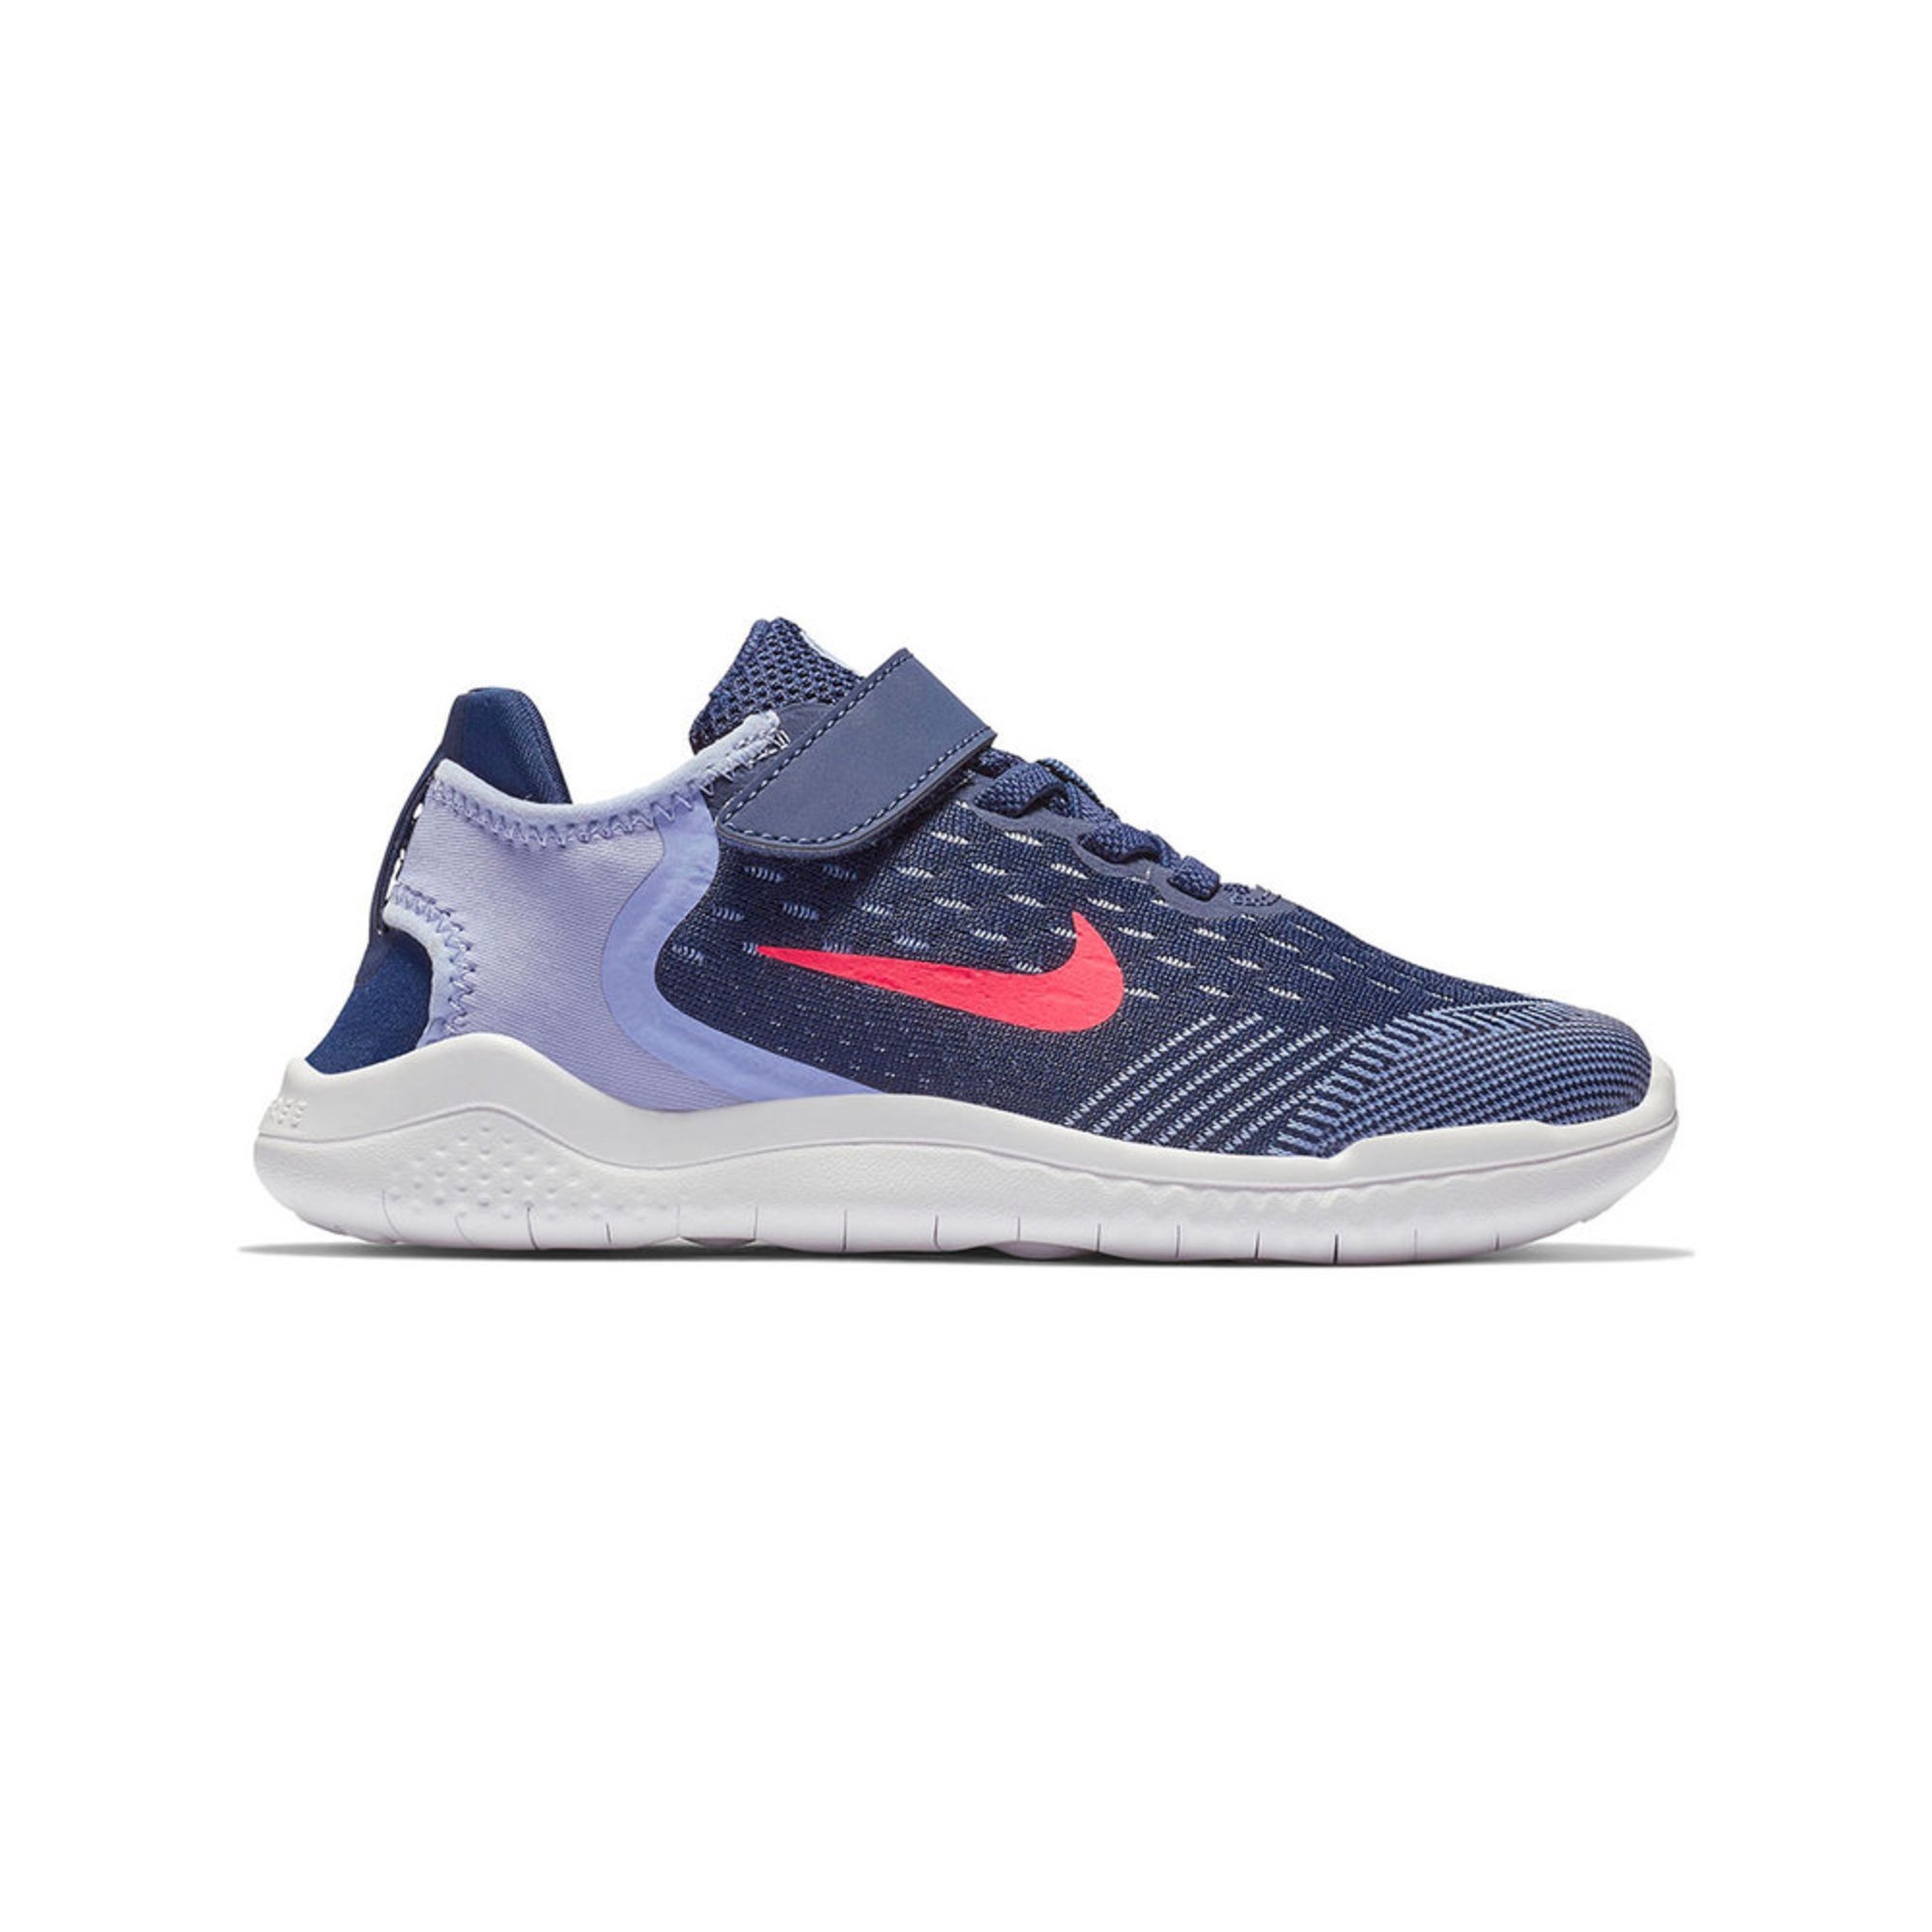 d42a1431d83bef Nike. Nike Girls Free RN 2018 Running Shoe (Little Kid)